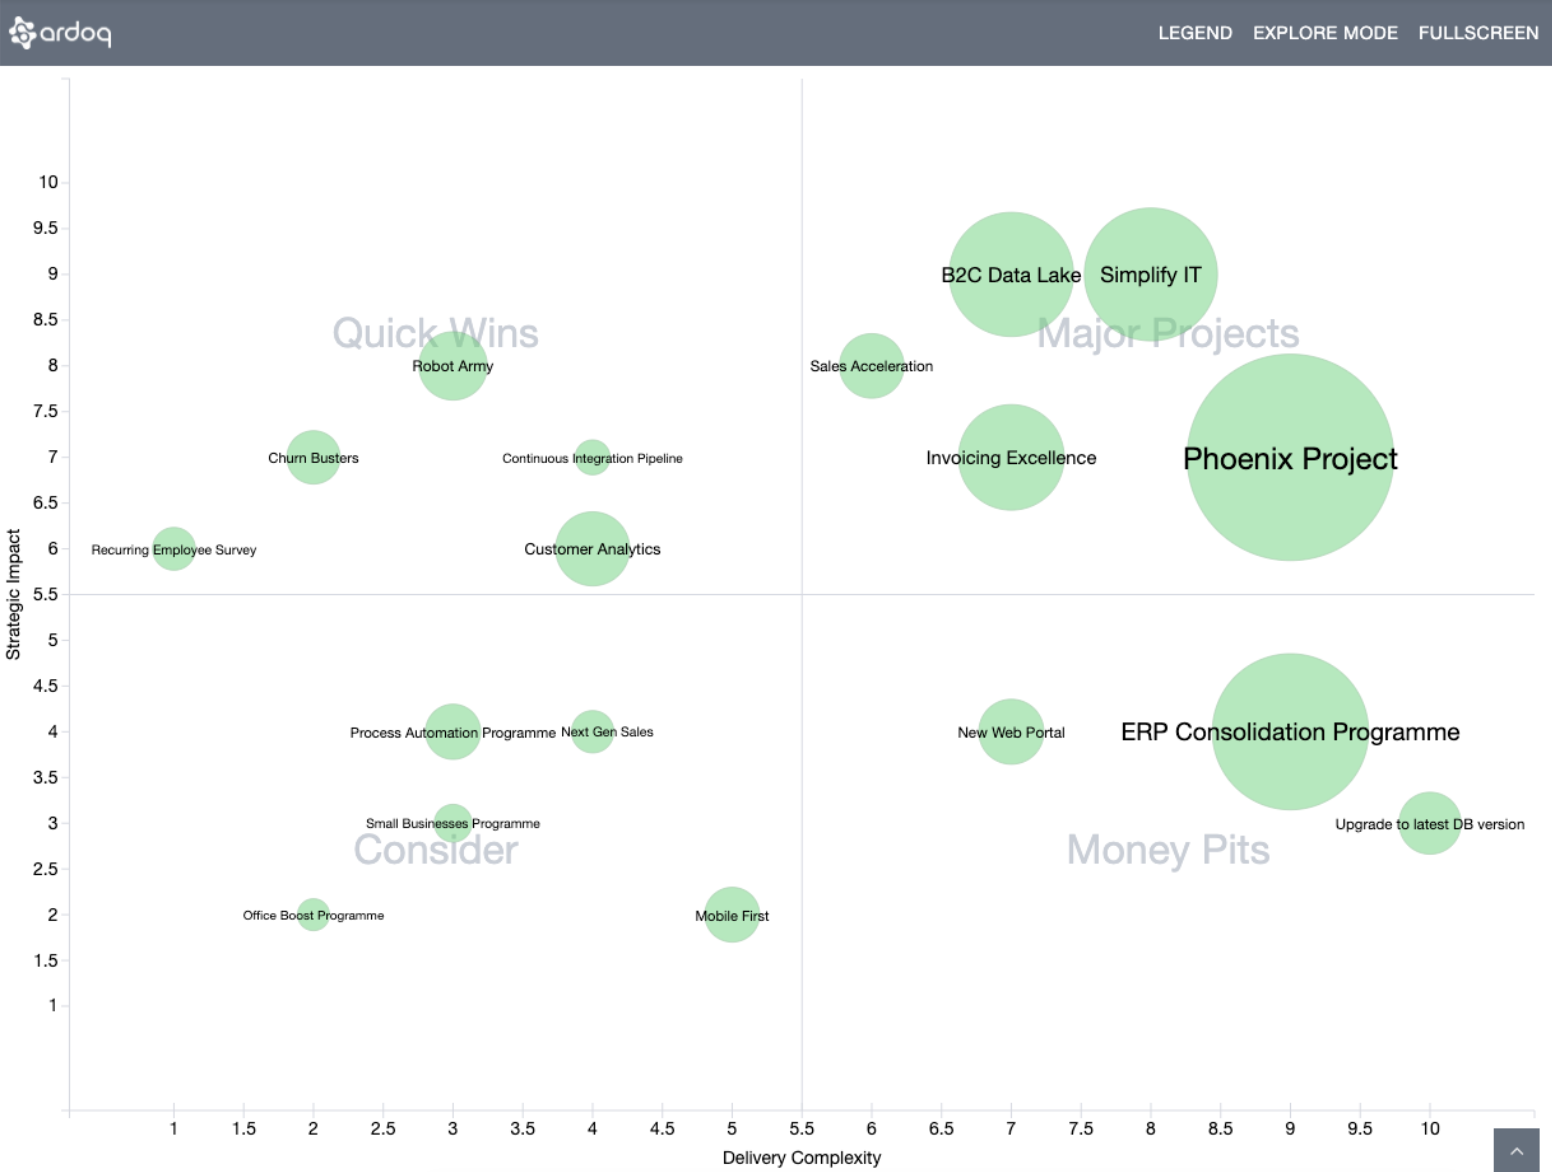 Bubble chart placing projects based on their attributed Complexity and Strategic Impact.